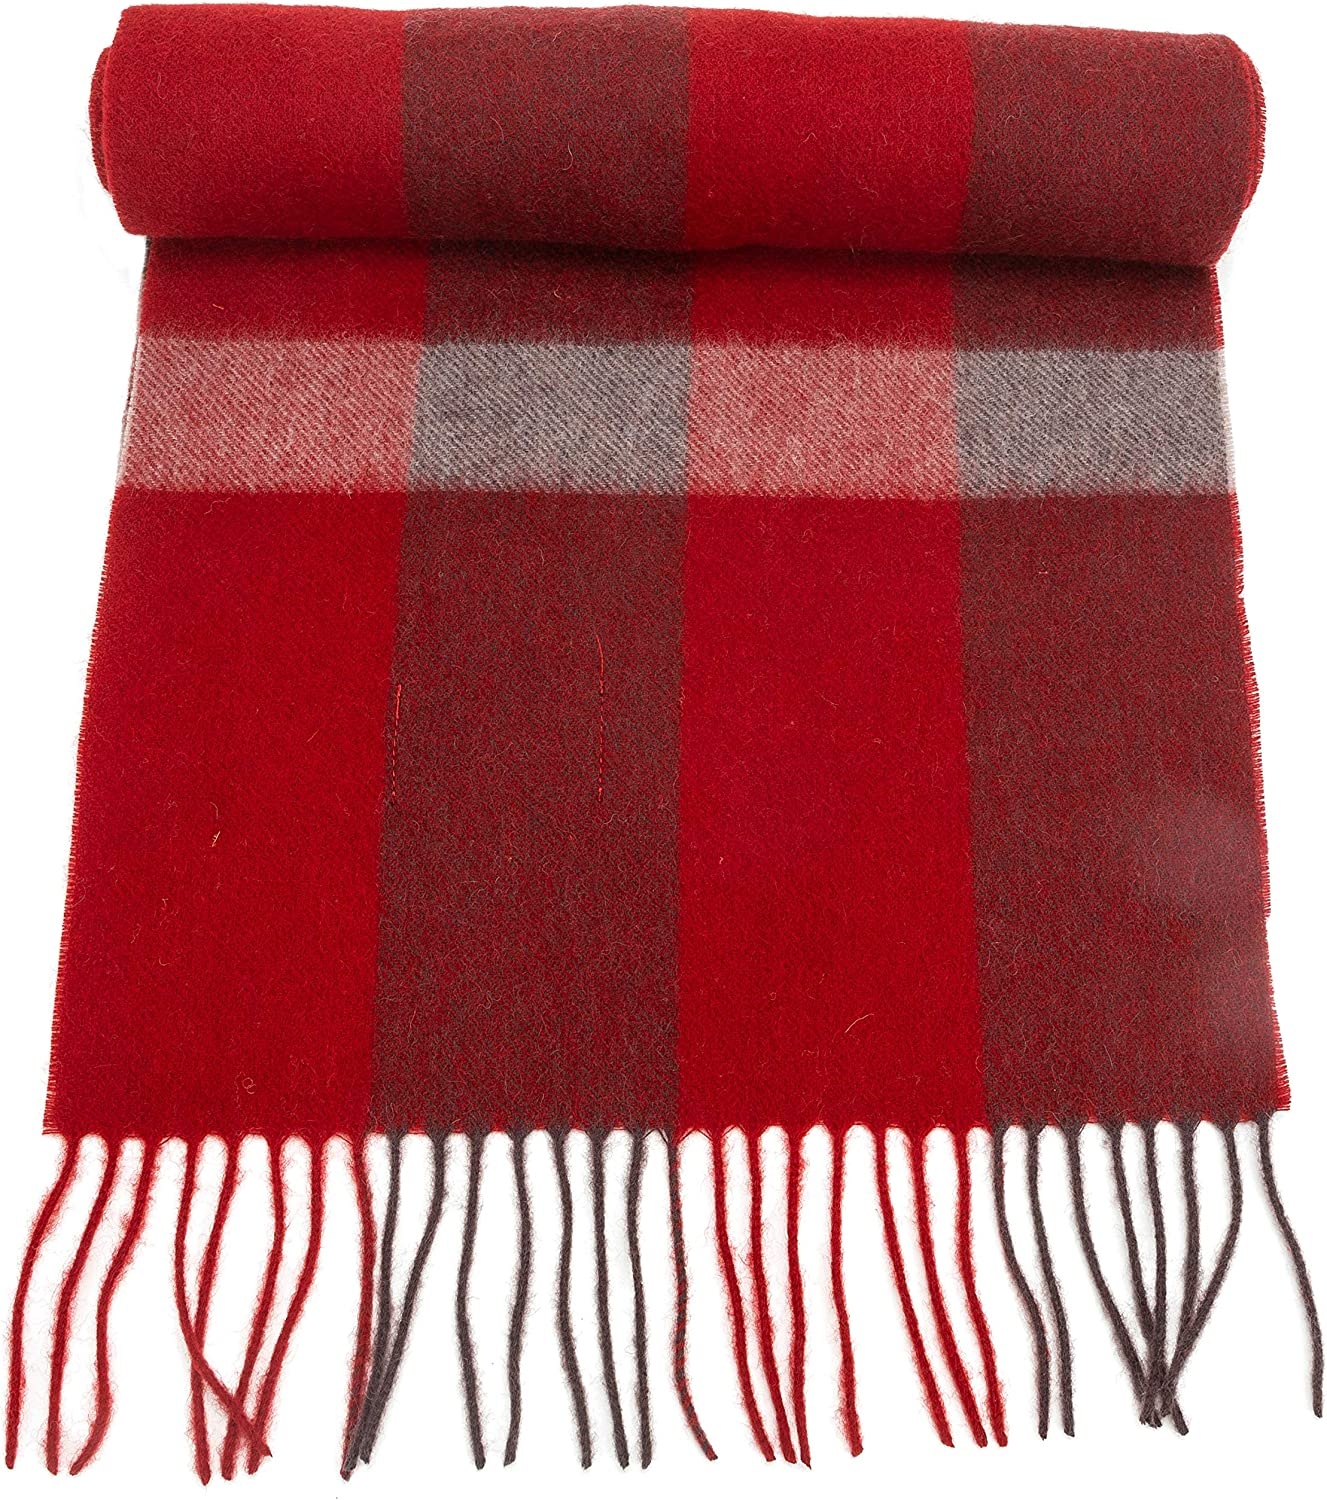 100% Virgin Wool Scarf for Women, Solids, Plaids, Warm Soft Luxurious by CANDOR AND CLASS